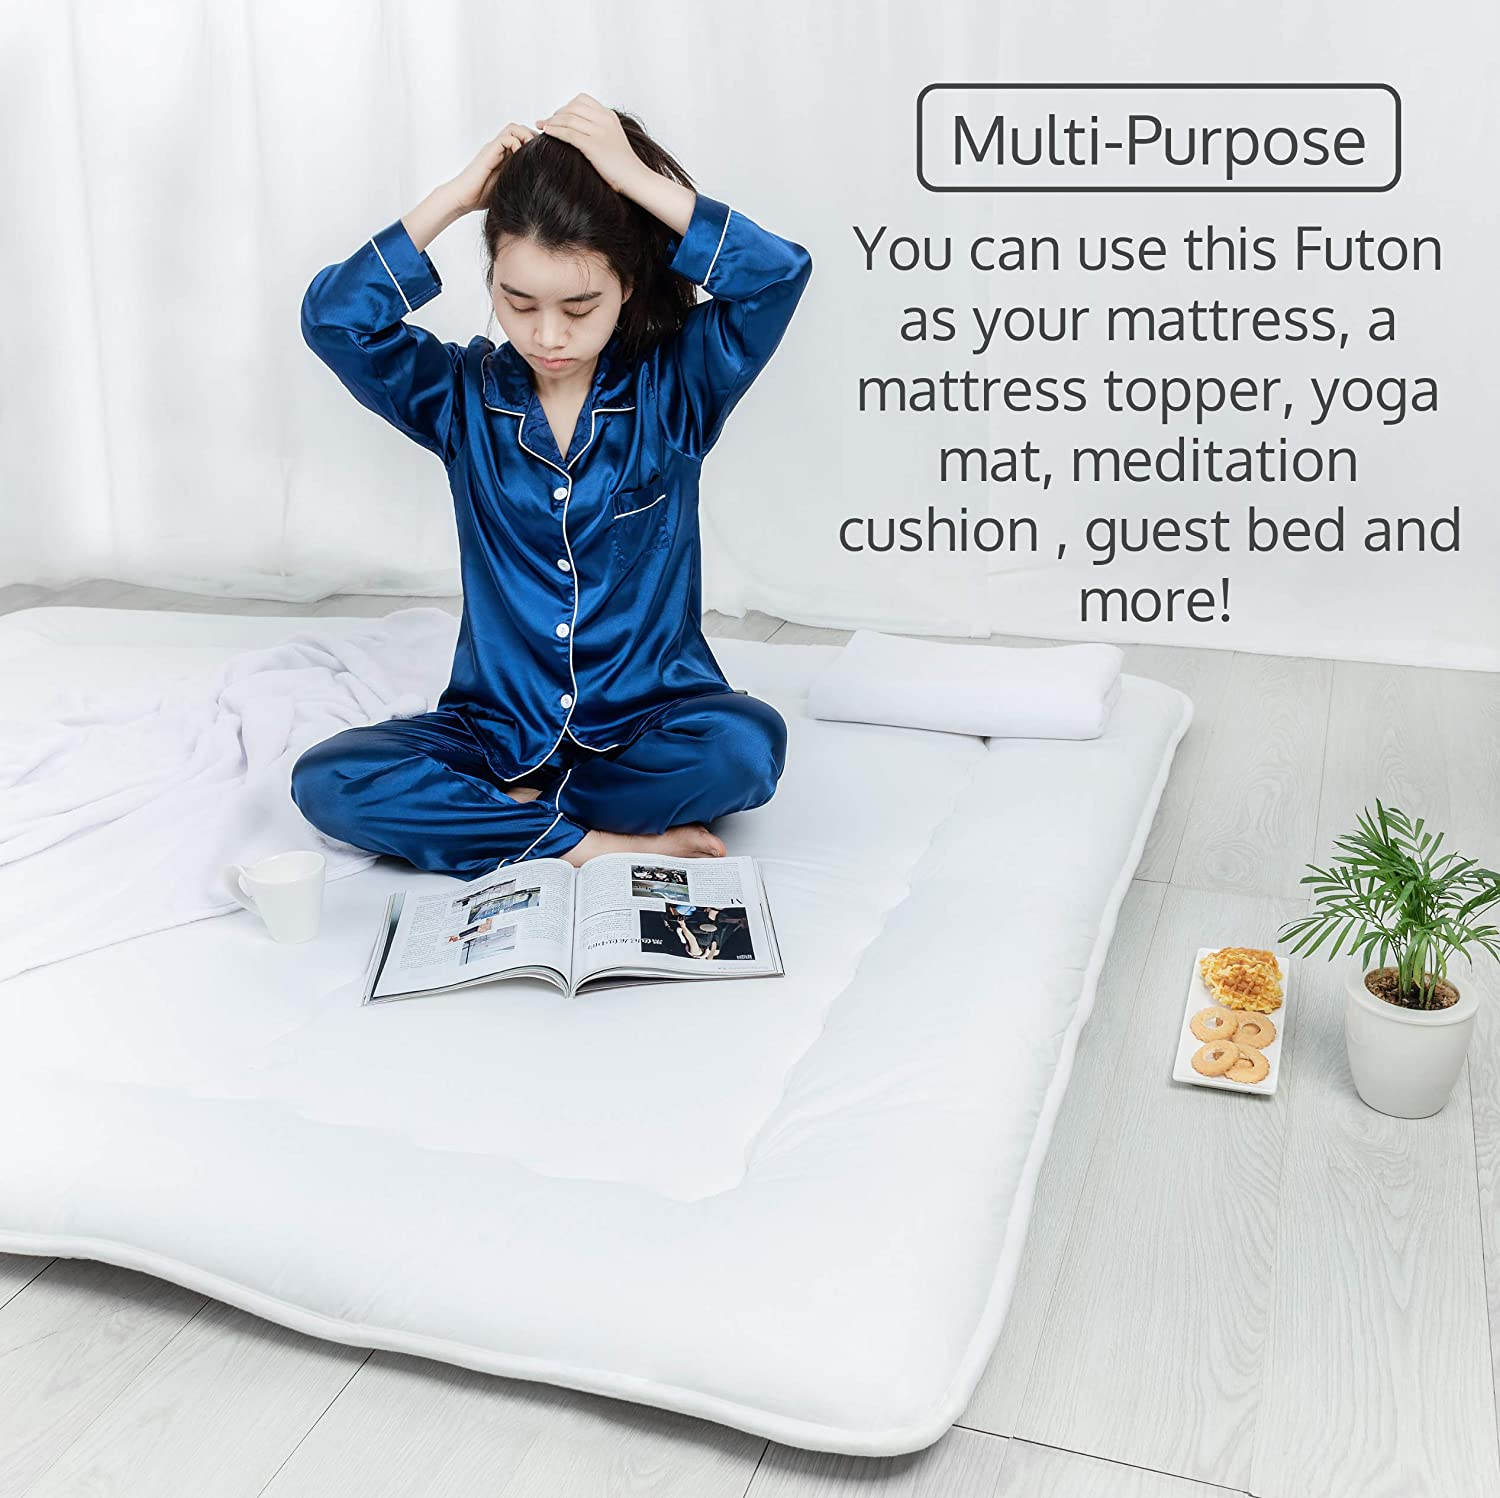 Luxton Home Japanese Shiki Futon Foldable Mattress for Sleep & Travel - Queen Long